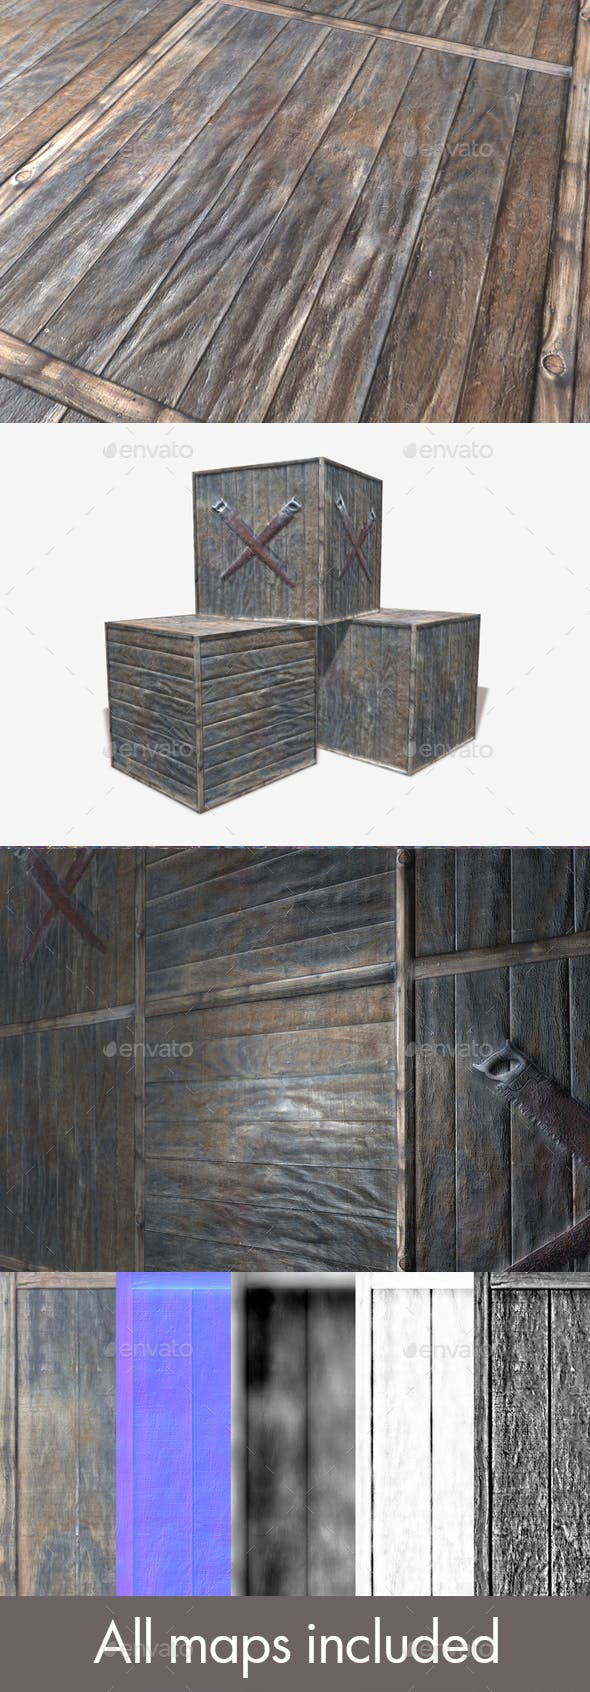 3 Wooden Crate Seamless Textures - 3DOcean Item for Sale